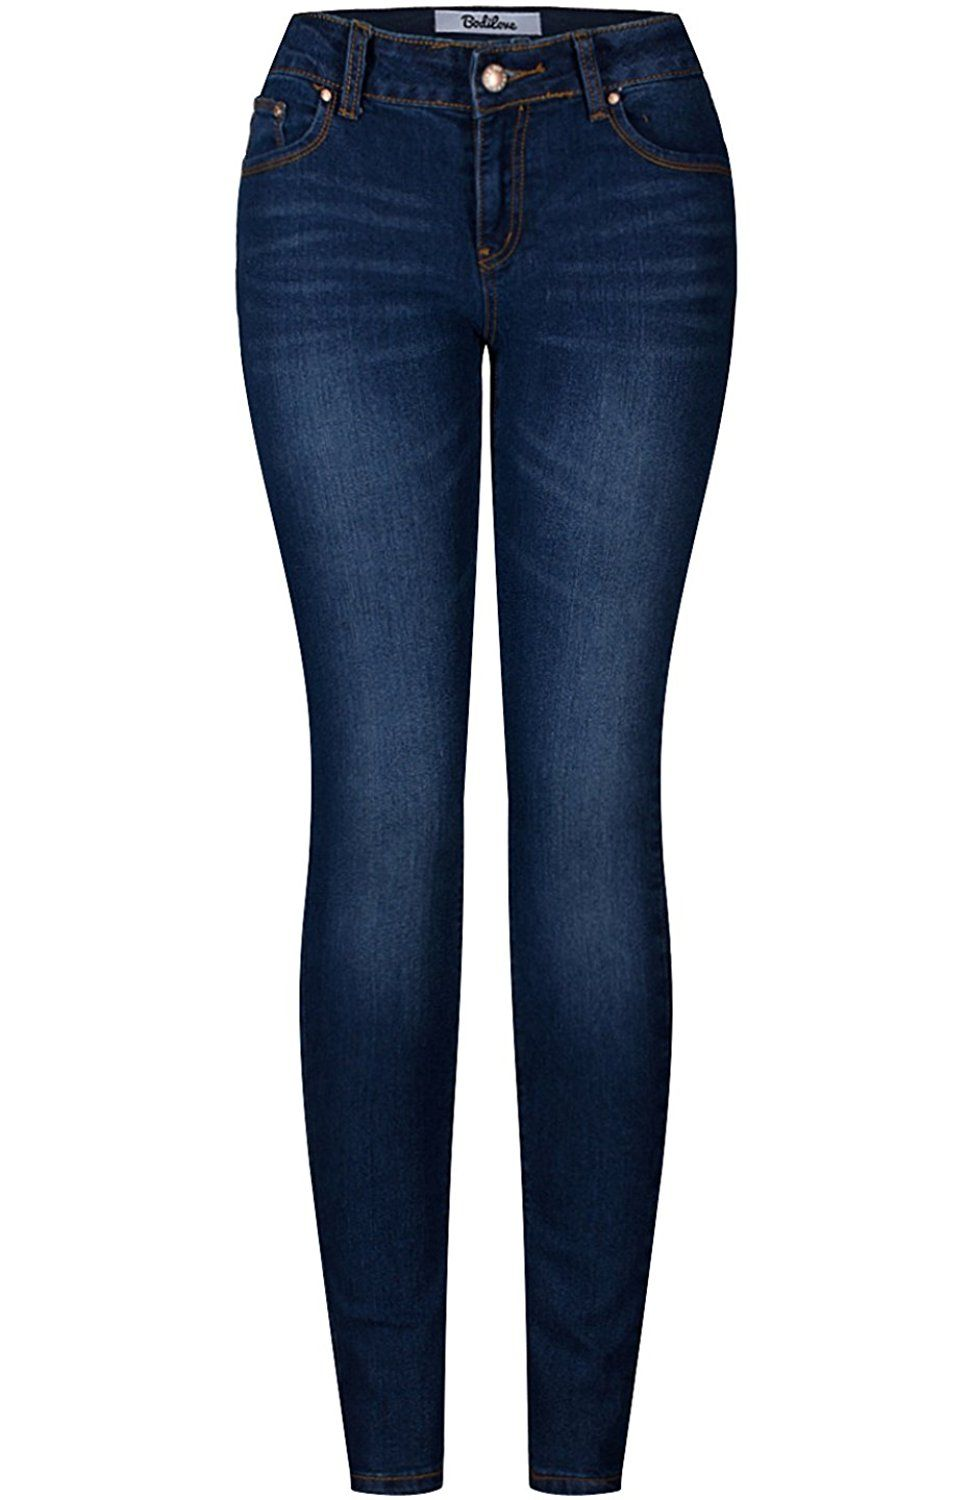 78b3fa49daed 2LUV Women s 5 Pocket Ankle Stretch Skinny Jeans